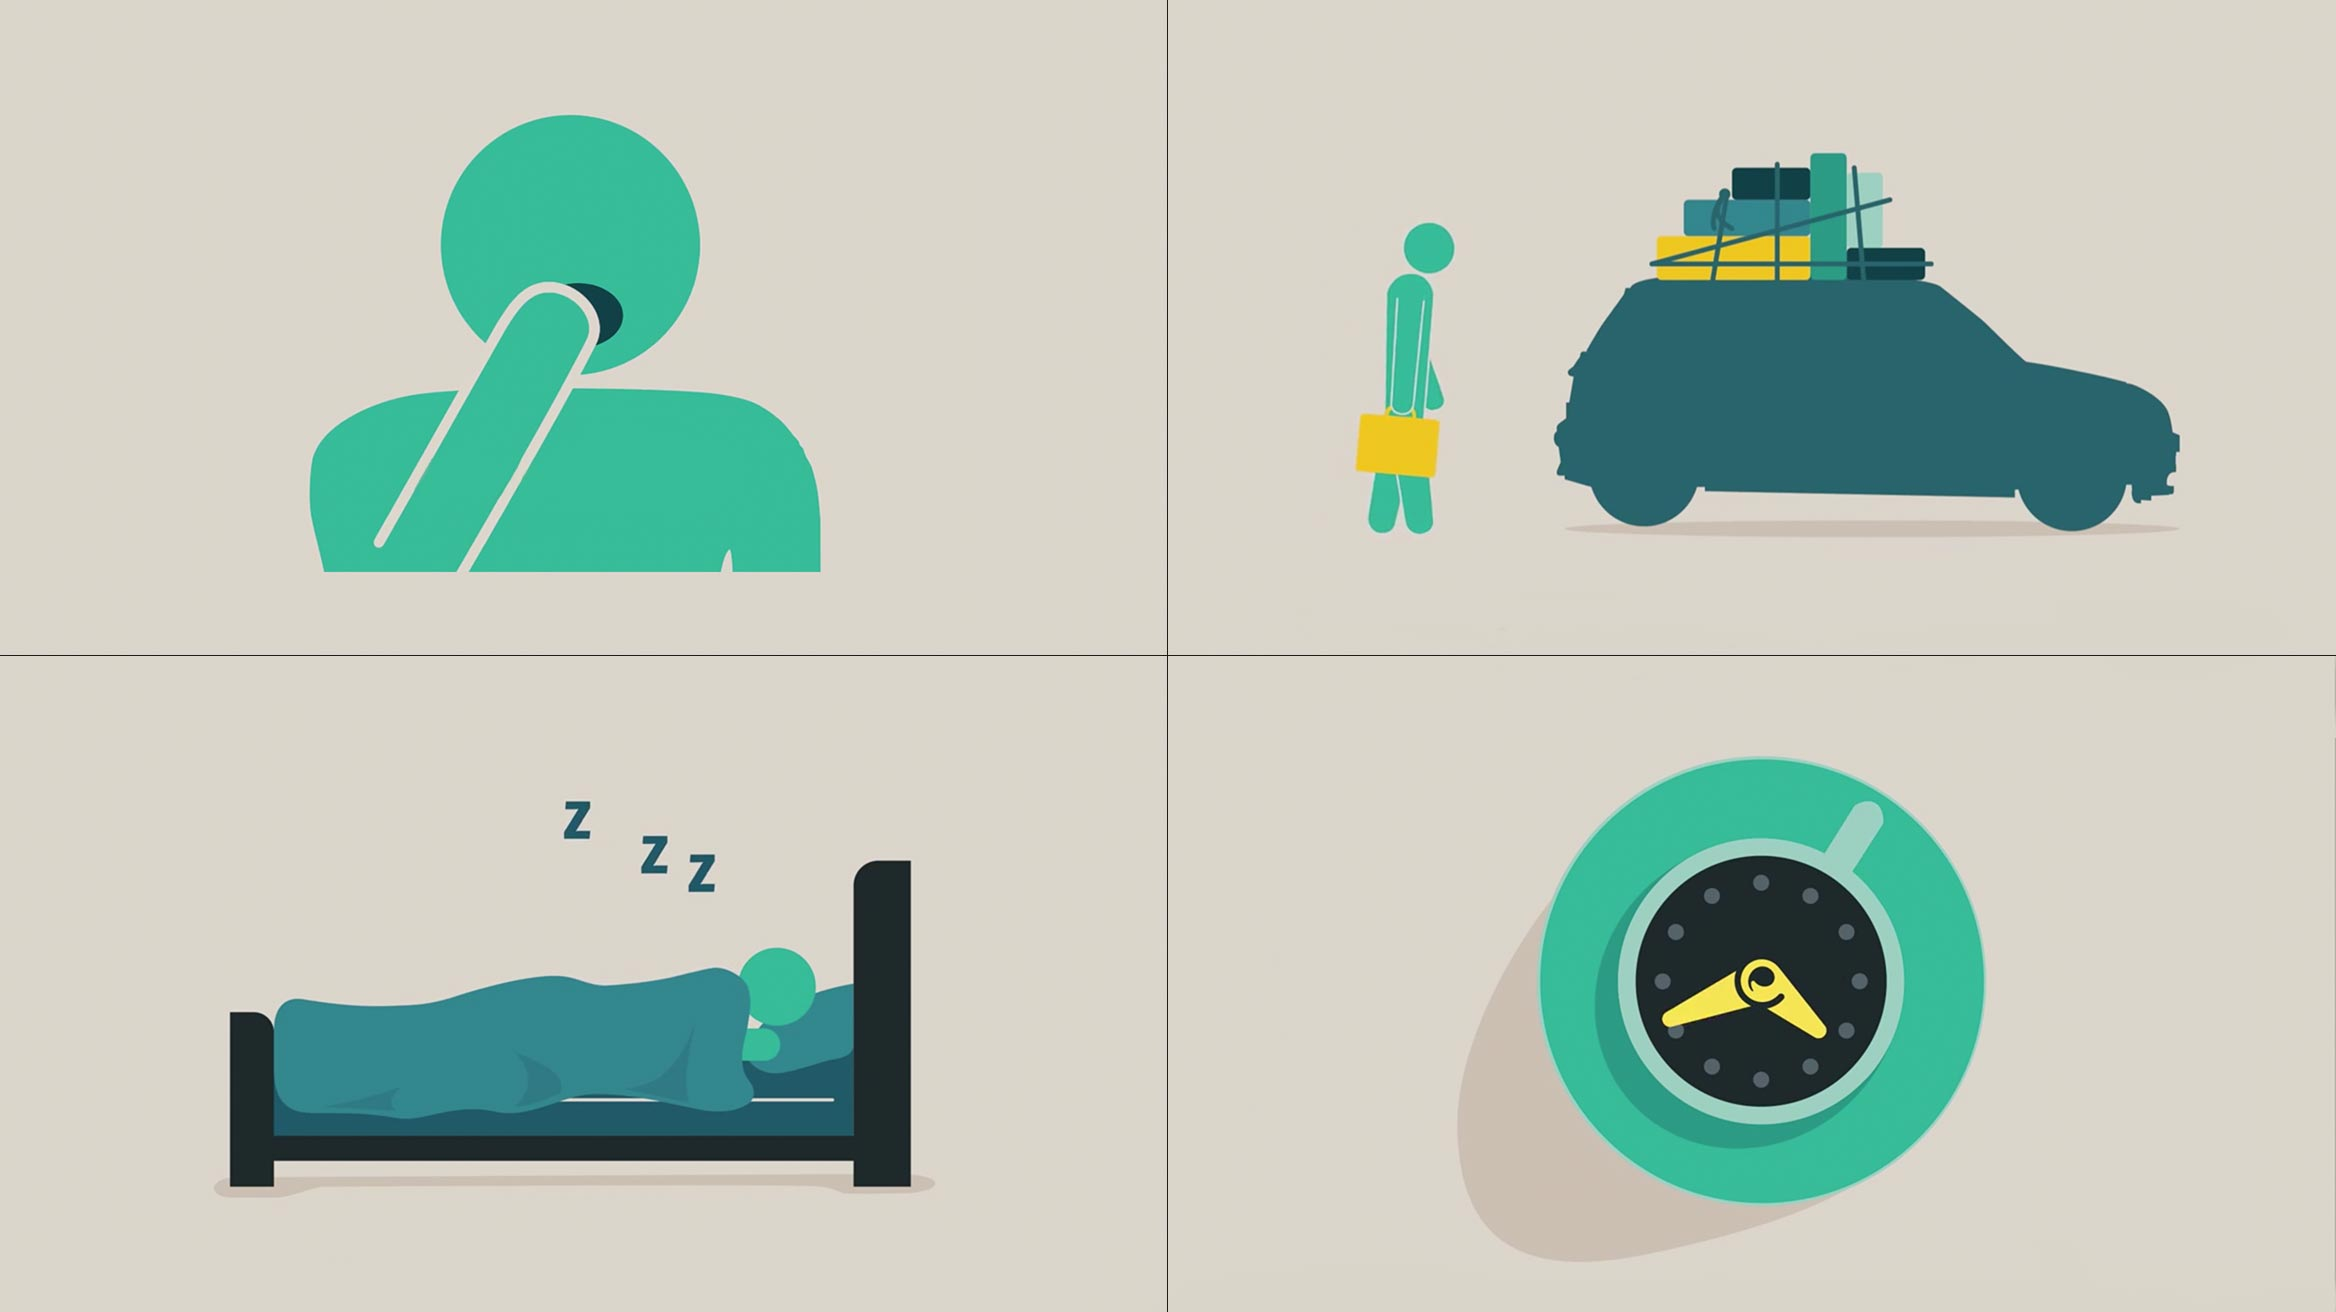 animation graphic of: a person yawning, car with luggage, person sleeping, clock